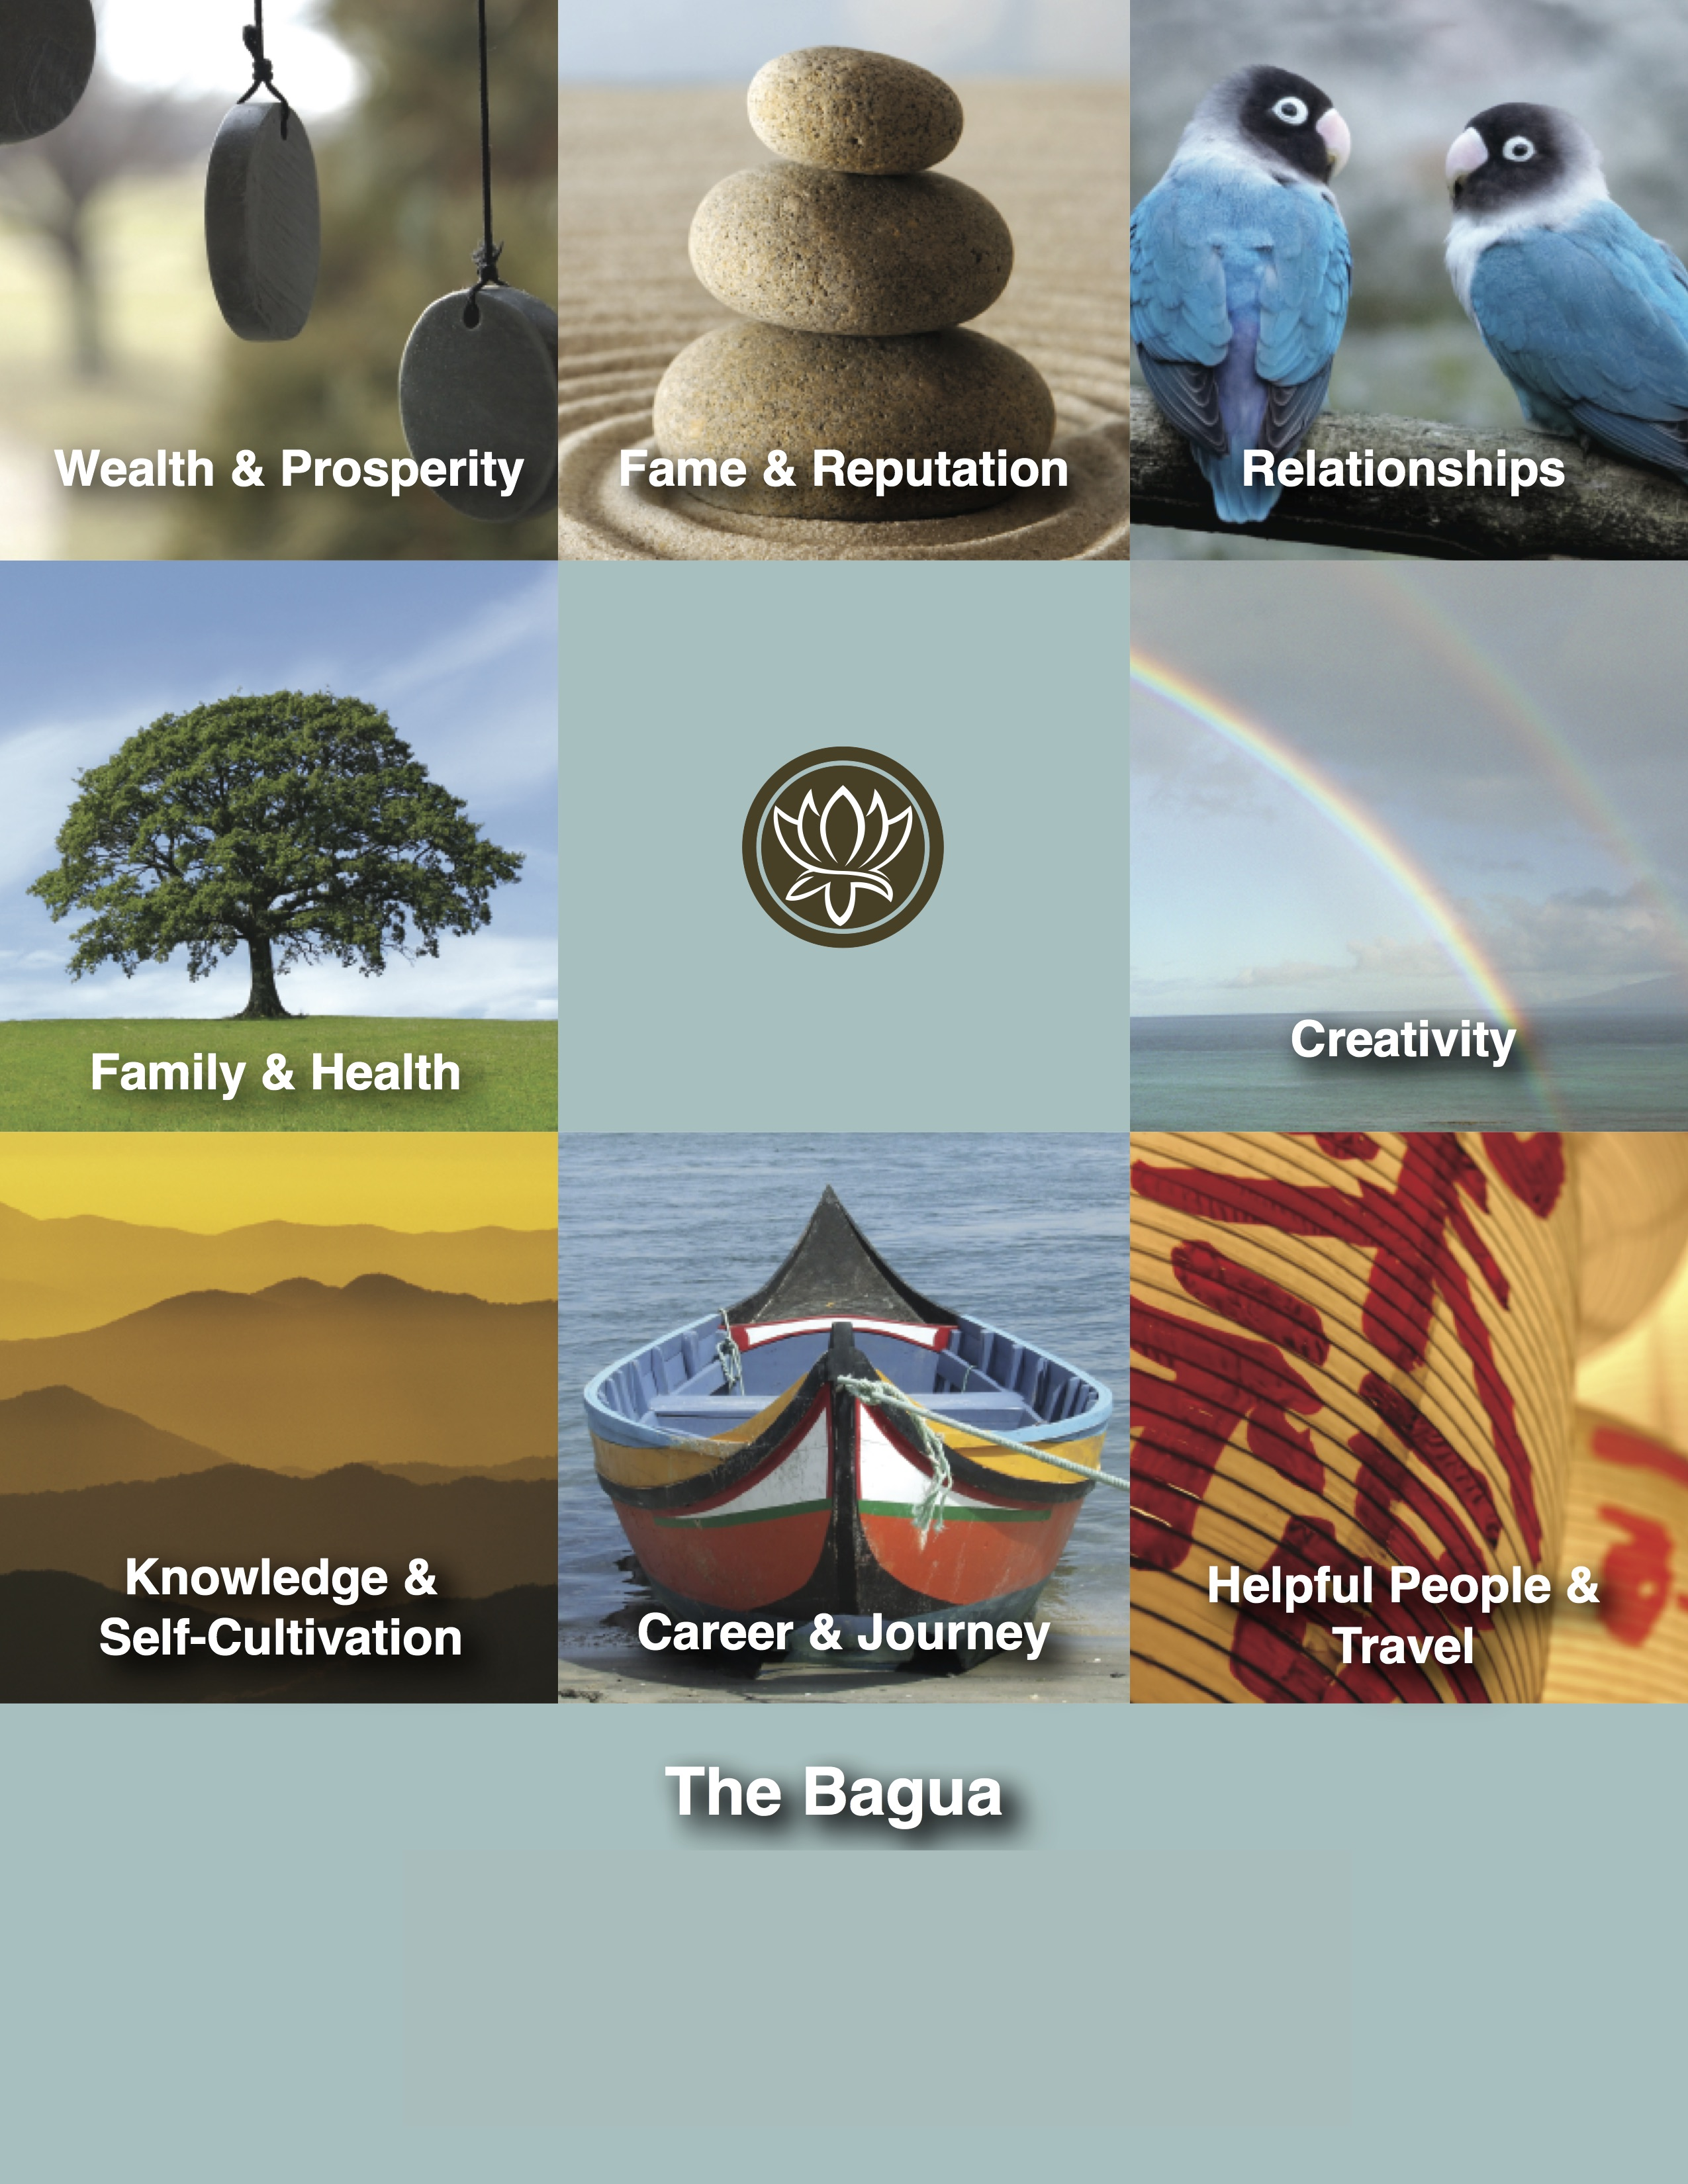 A graphic of the 8 feng shui bagua areas with symbolic images representing their meanings, for example, a pair of birds to represent the Love & Marriage area.